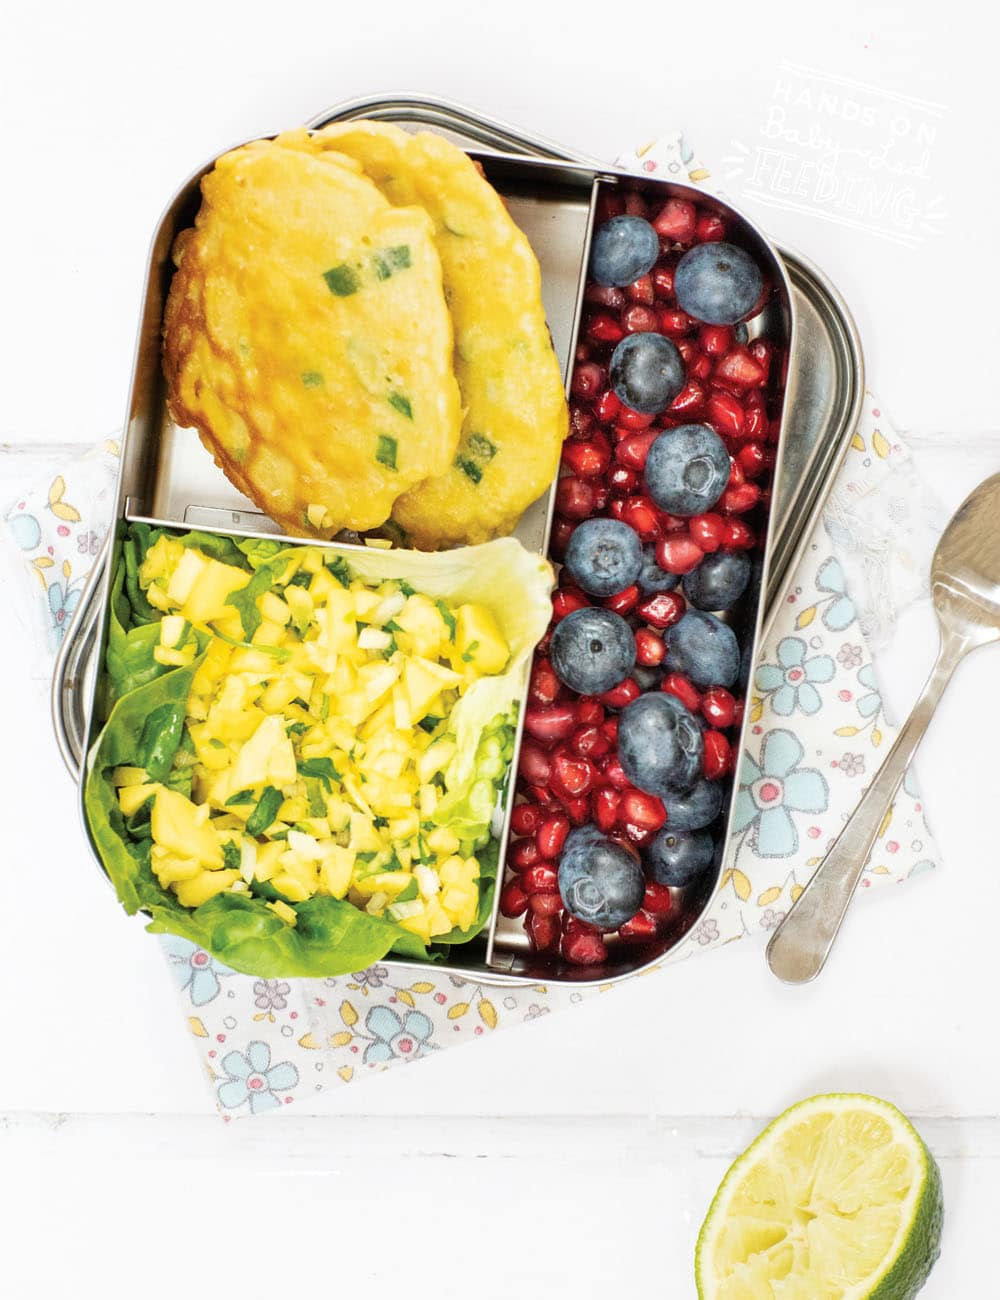 Sweetcorn Fritters with EASY Mango Salsa is one of the easiest lunchbox ideas you'll add to your bento box! Made with common kitchen ingredients and simple steps. This easy healthy finger food is super for picky eaters, toddlers, kids, and baby led weaning! #fingerfood #lunchbox #bentobox #backtoschool #fritters